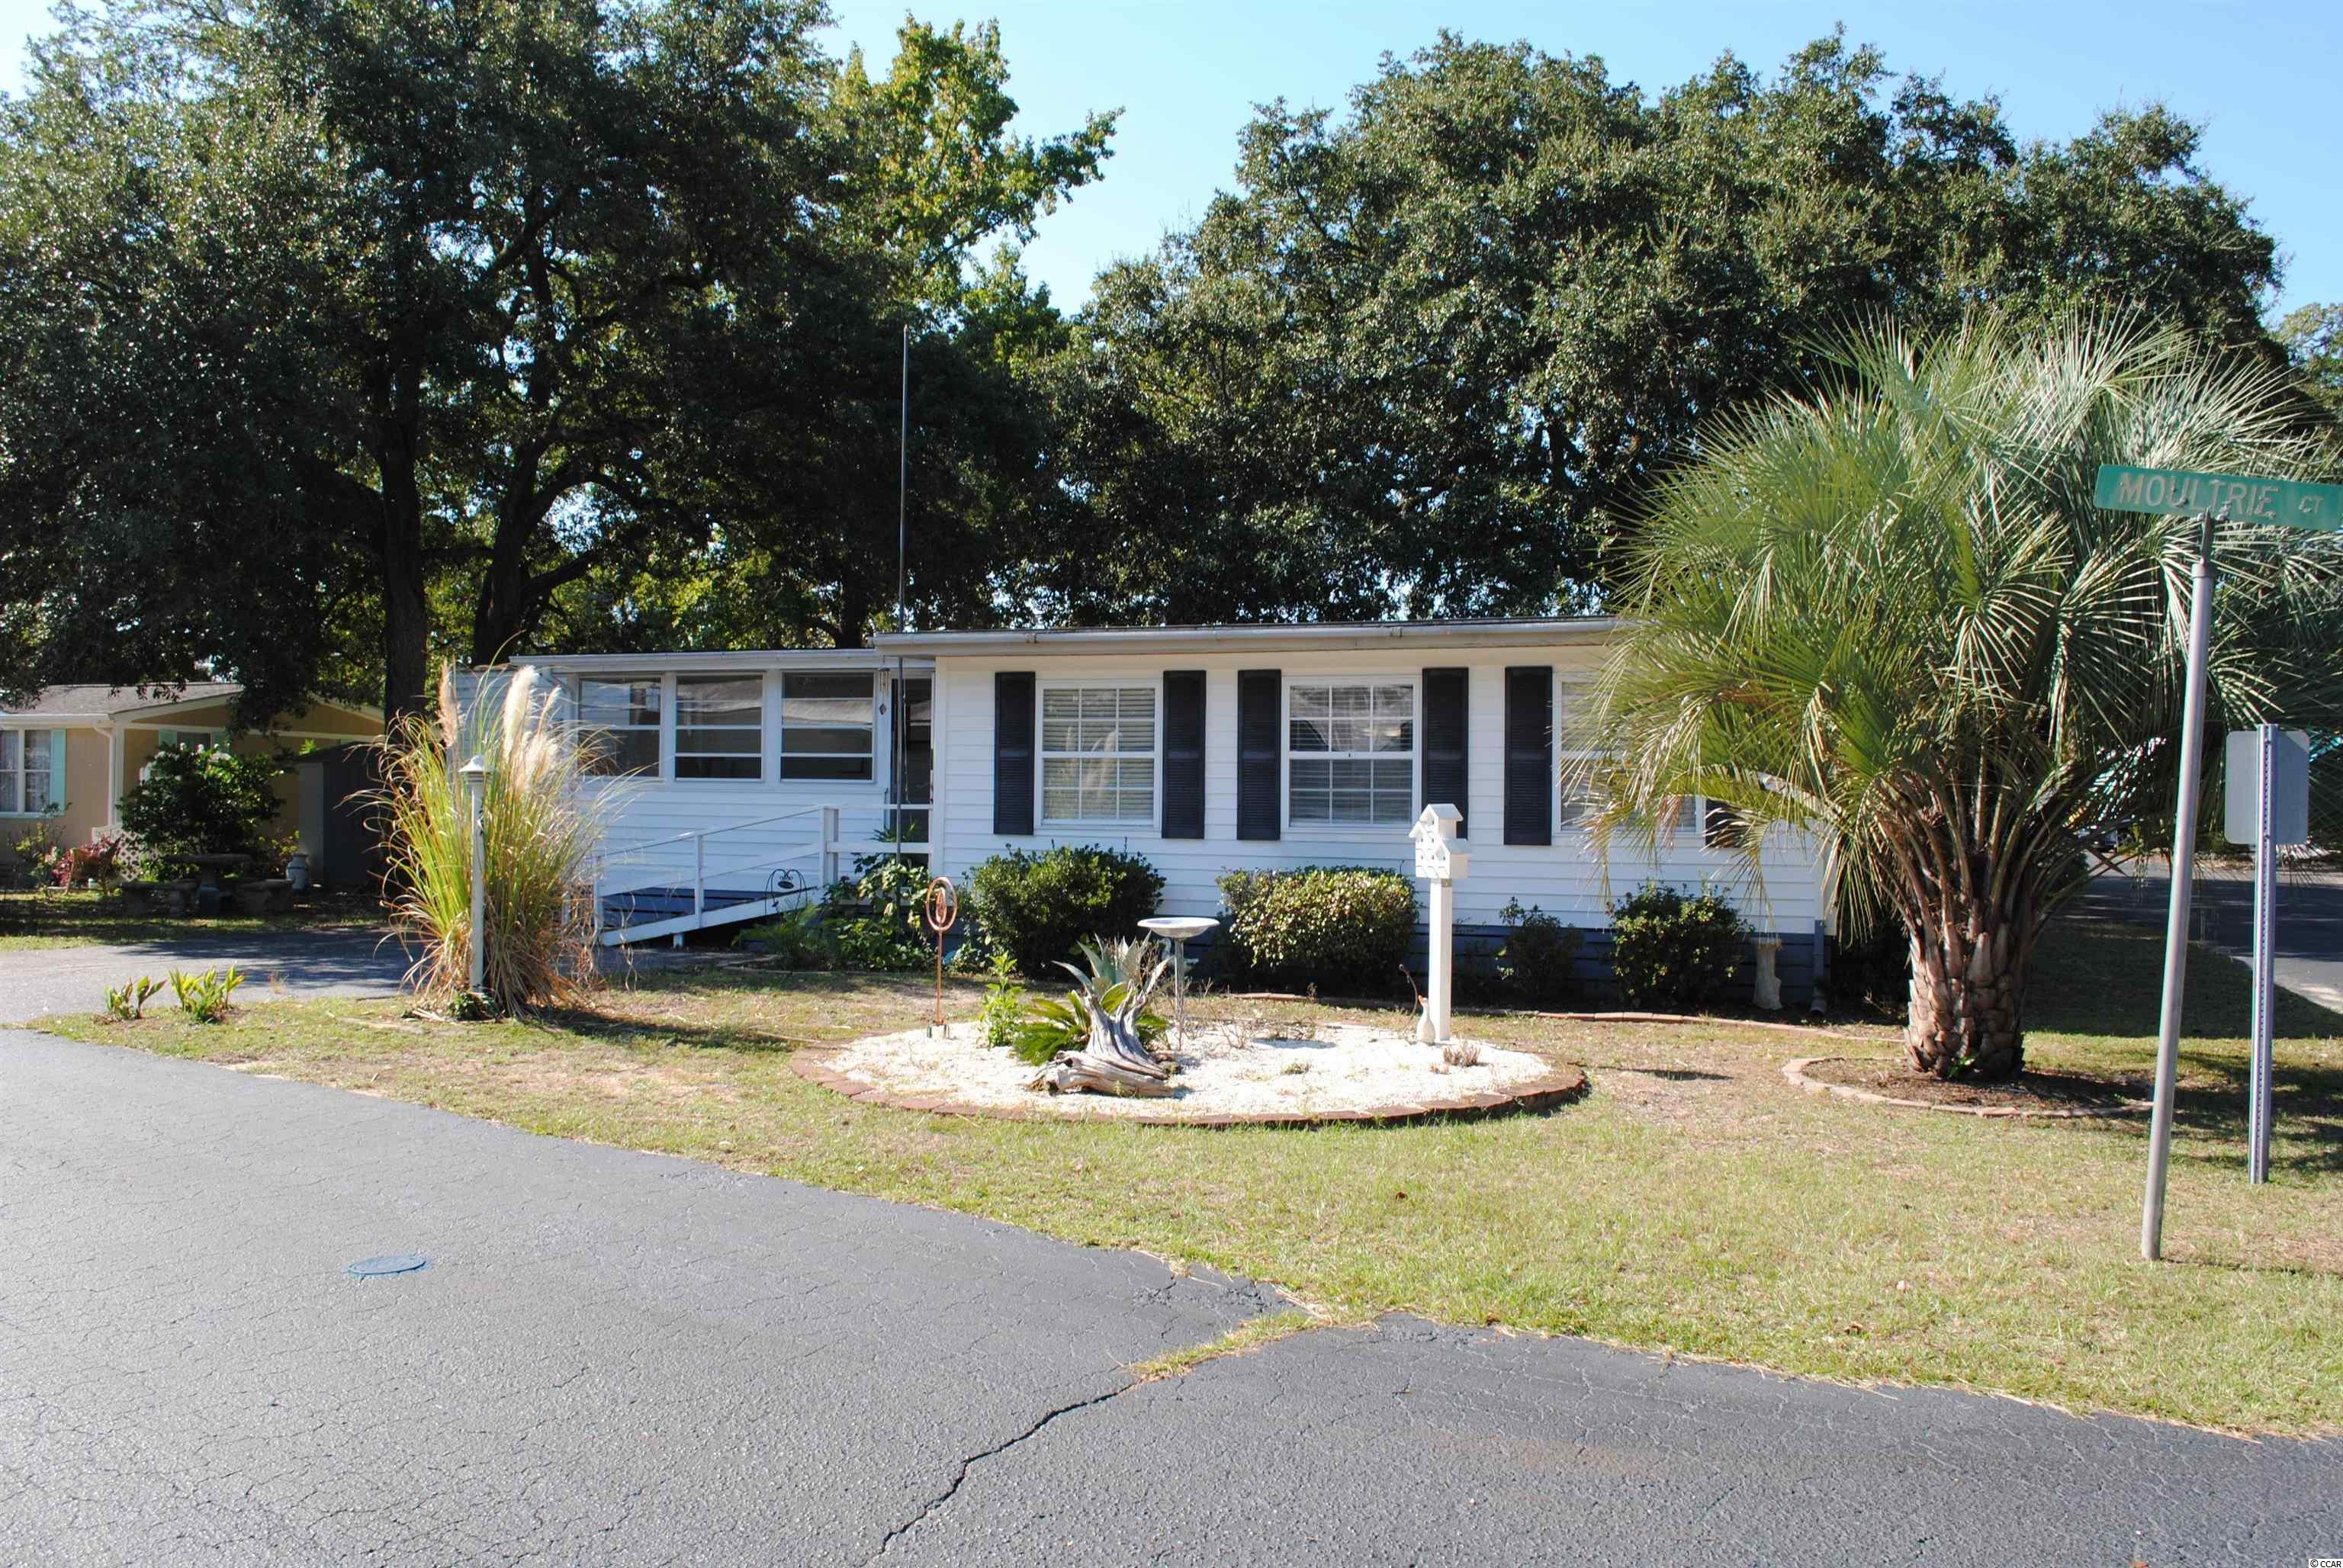 Come check out this home located in Inlet Oaks Village, one of the best kept secrets of Murrells Inlet.  This 55+ mobile home community is just a little over a mile from the ocean.  Inlet Oaks offers planned community activities by the Social Club, spacious clubhouse for cards, crafts, special events, library, free Wi-Fi, covered pavilion for picnics, games, billiards, horseshoe and cornhole pits, large outdoor swimming pool, and 3 ponds for fishing.  The community is also pet and golf cart friendly, restrictions apply.  Inlet Oaks is just a couple miles from the famous Brookgreen Gardens and Huntington Beach State Park.  Book your showing today to check out this  home and the peaceful community.